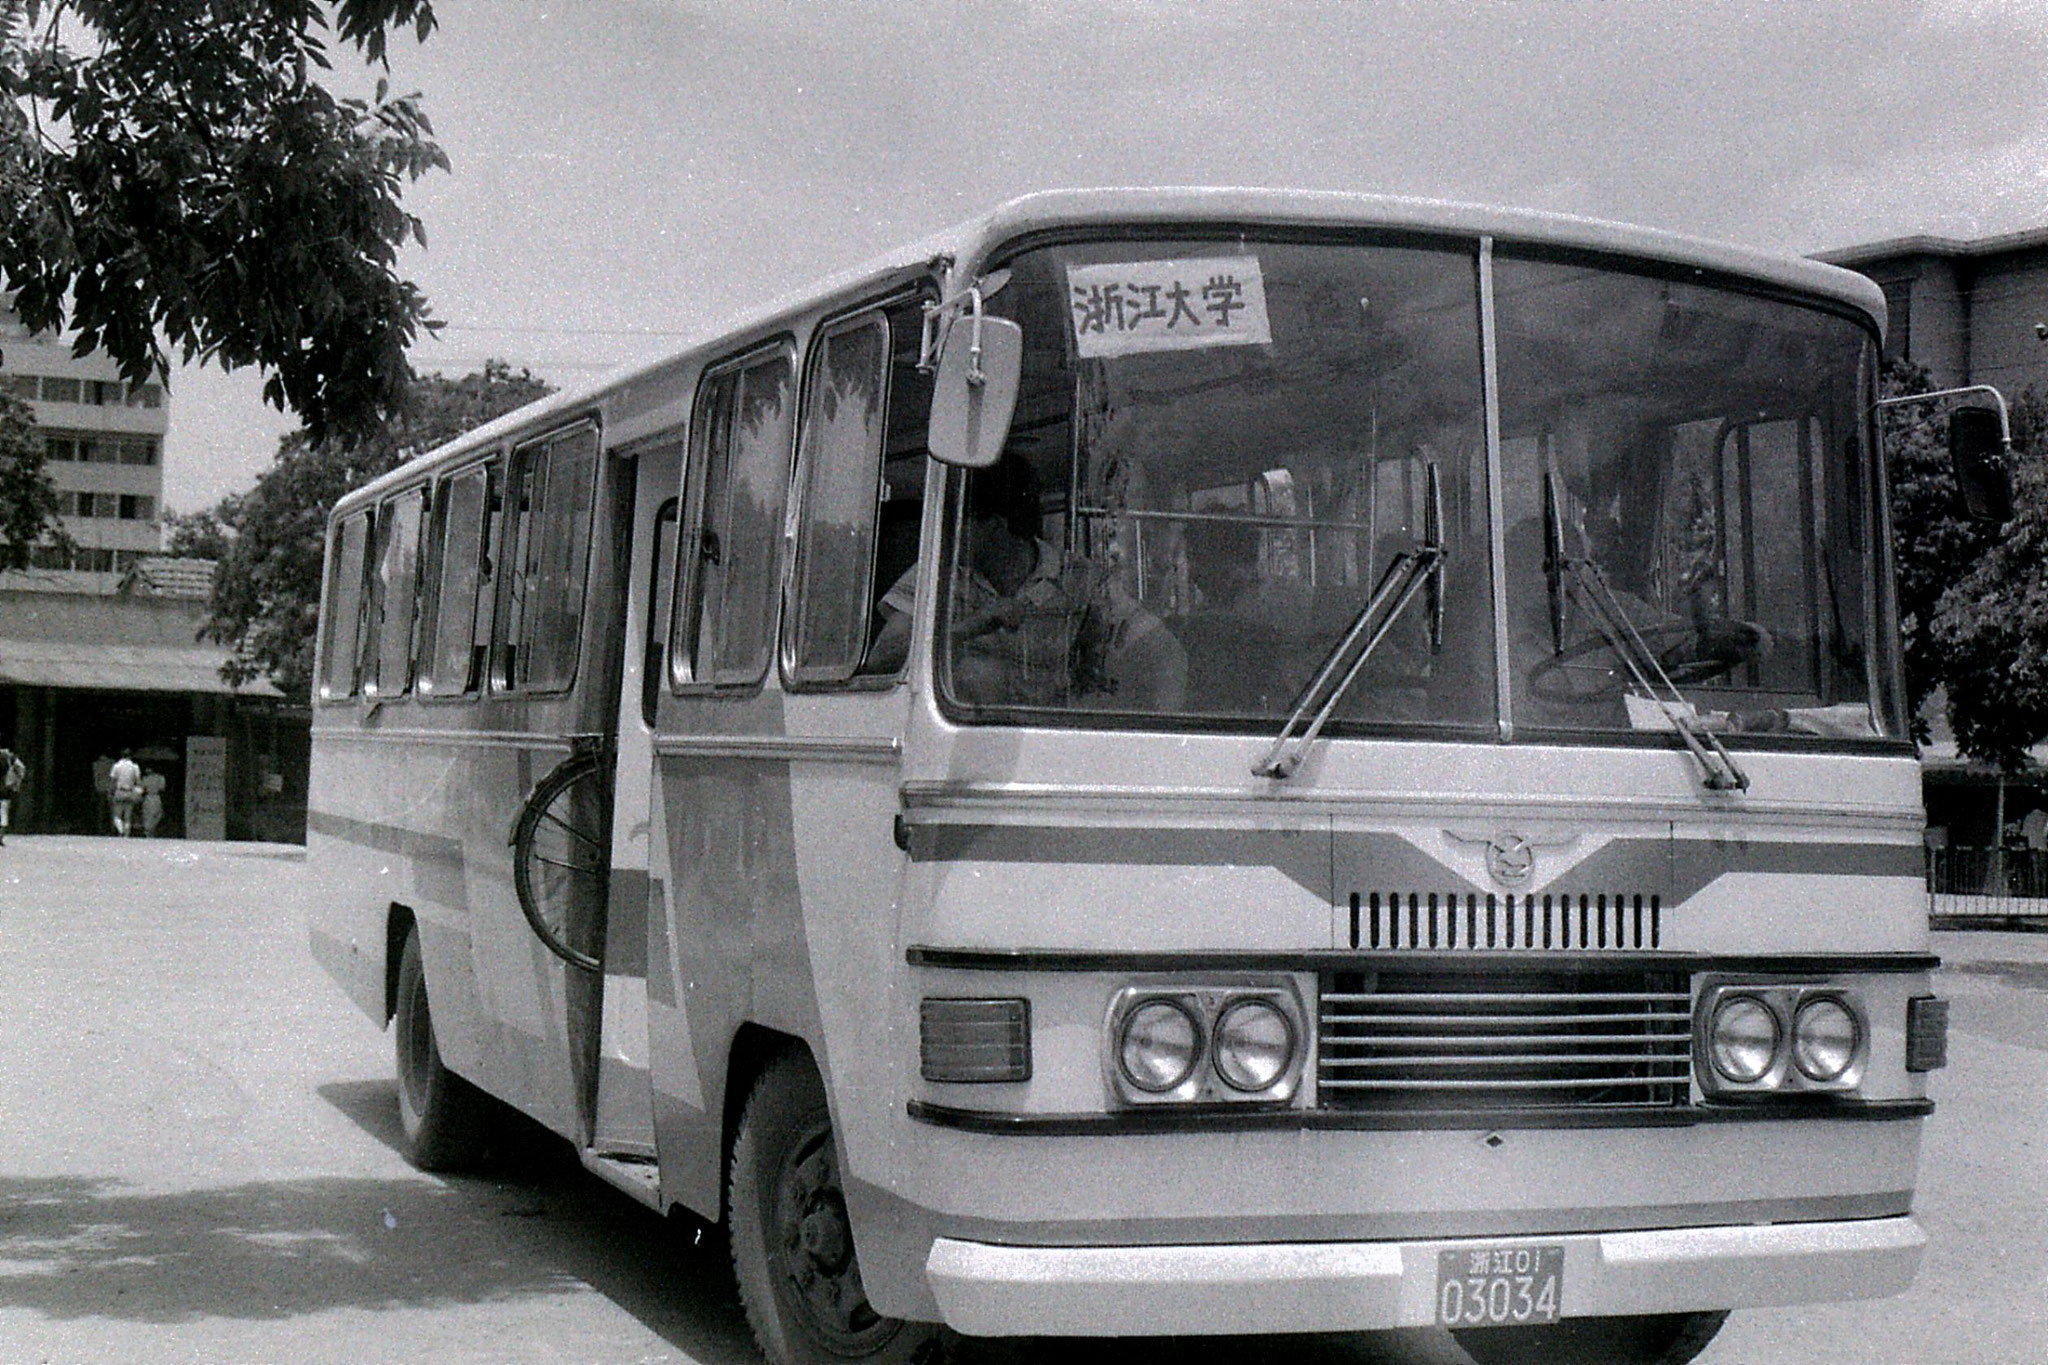 8/6/1989: 7: Zheda bus ? for demonstrators